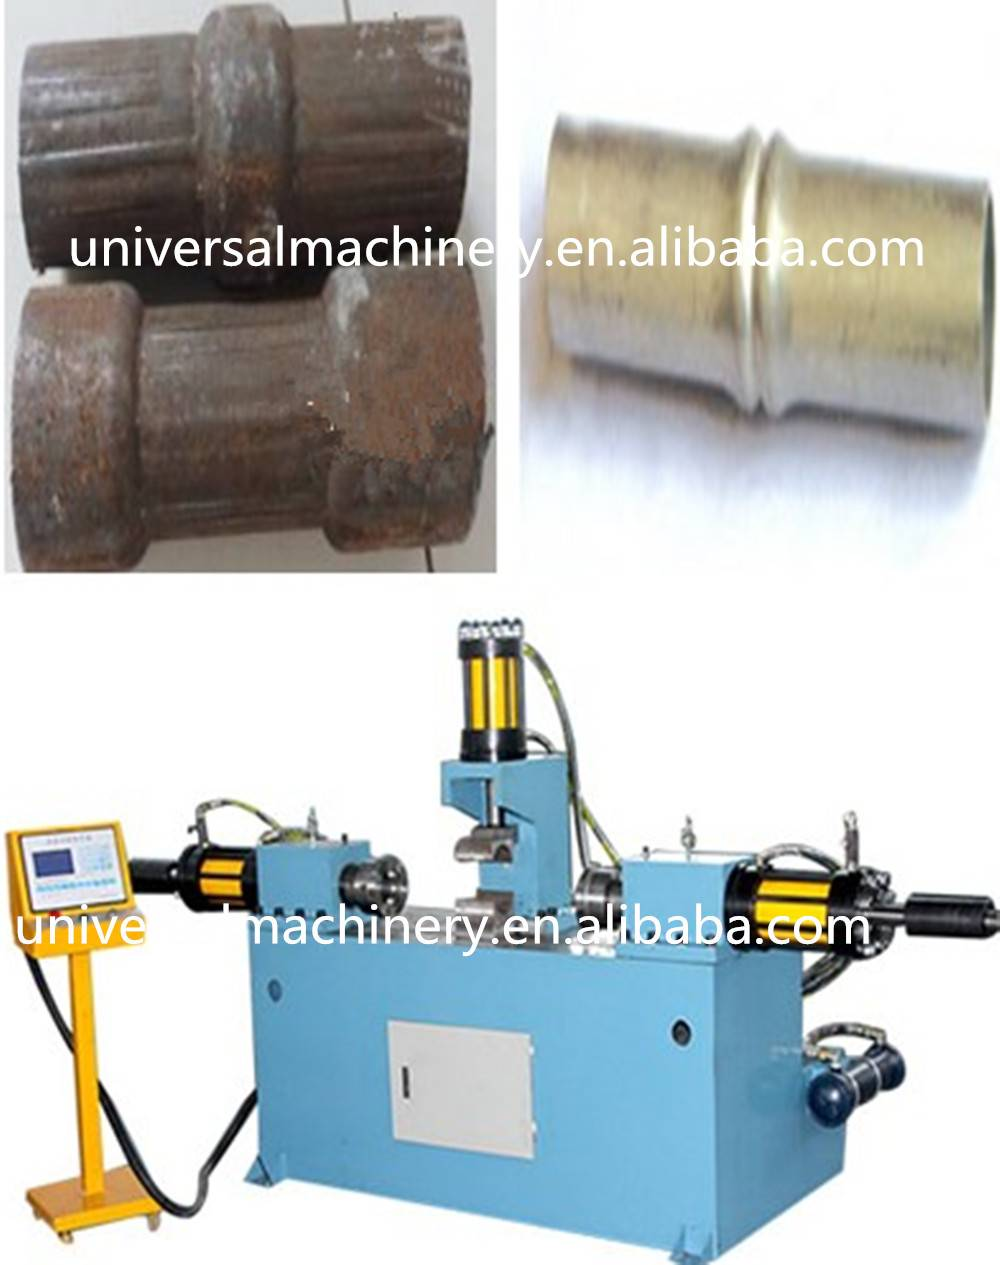 China top manufacturer Pipe Flanging Machine for flanging reducing expanding